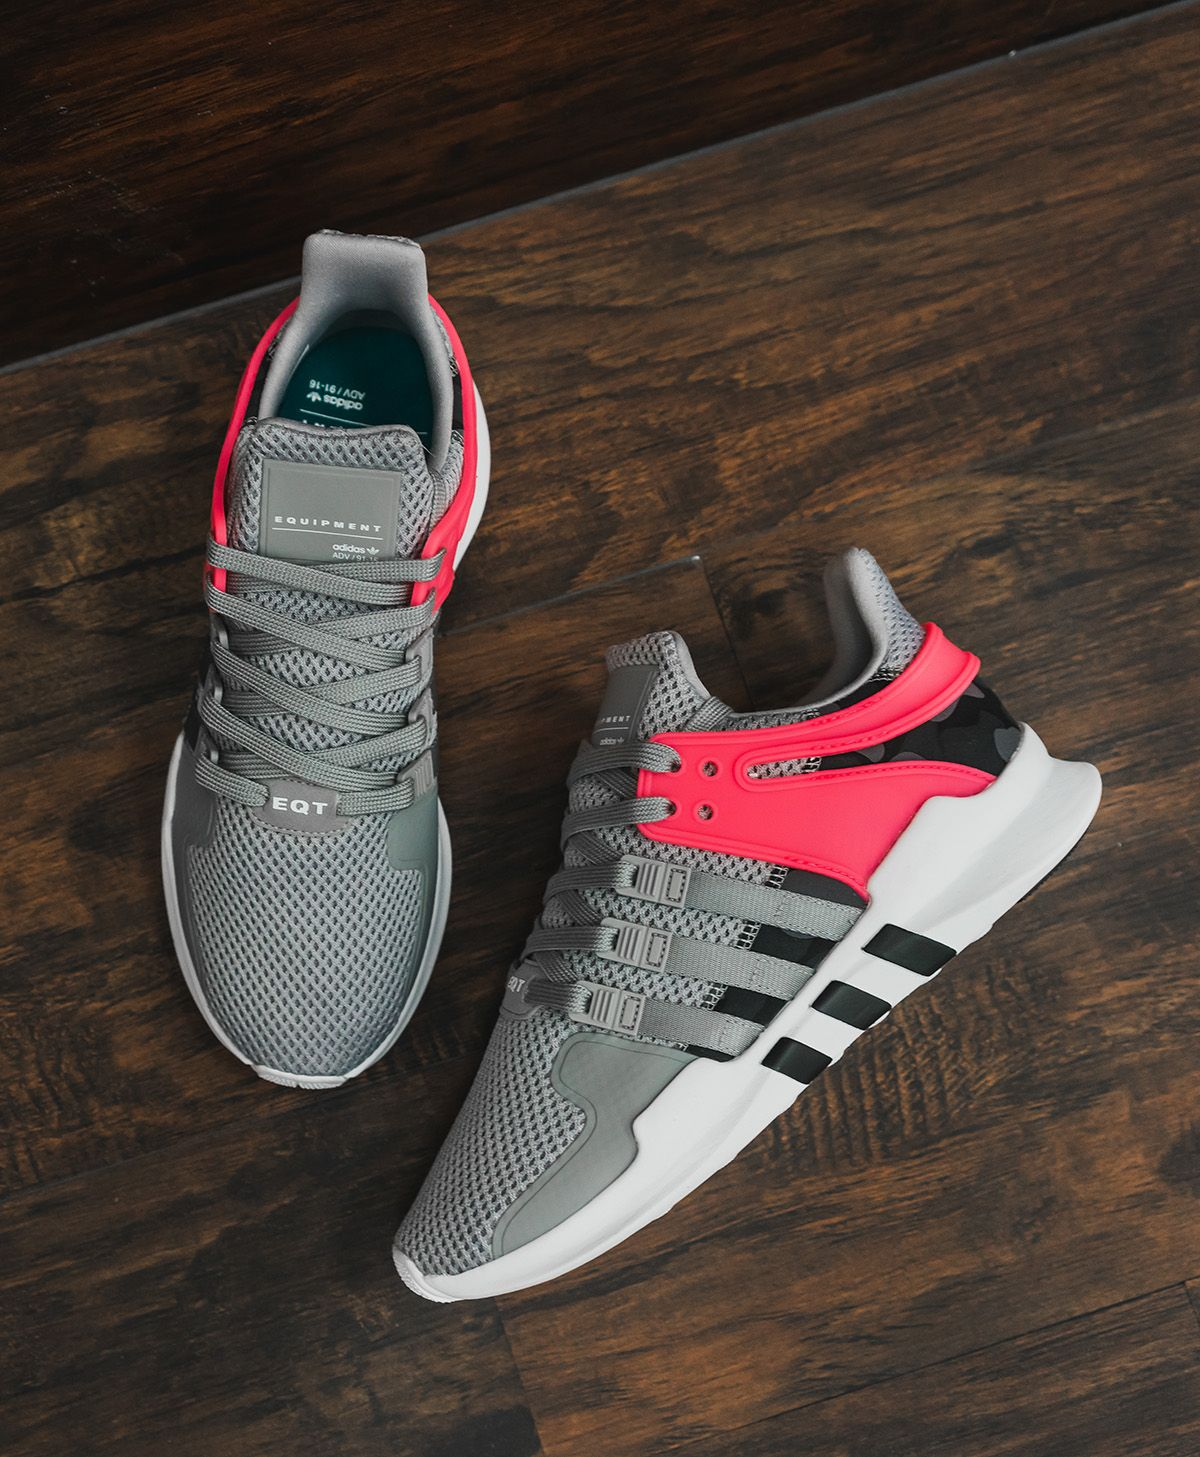 For Sneaker Releases Adidas Eu 2017 Of Week 12 Kicks Eqt 14 EqvwxZgEt